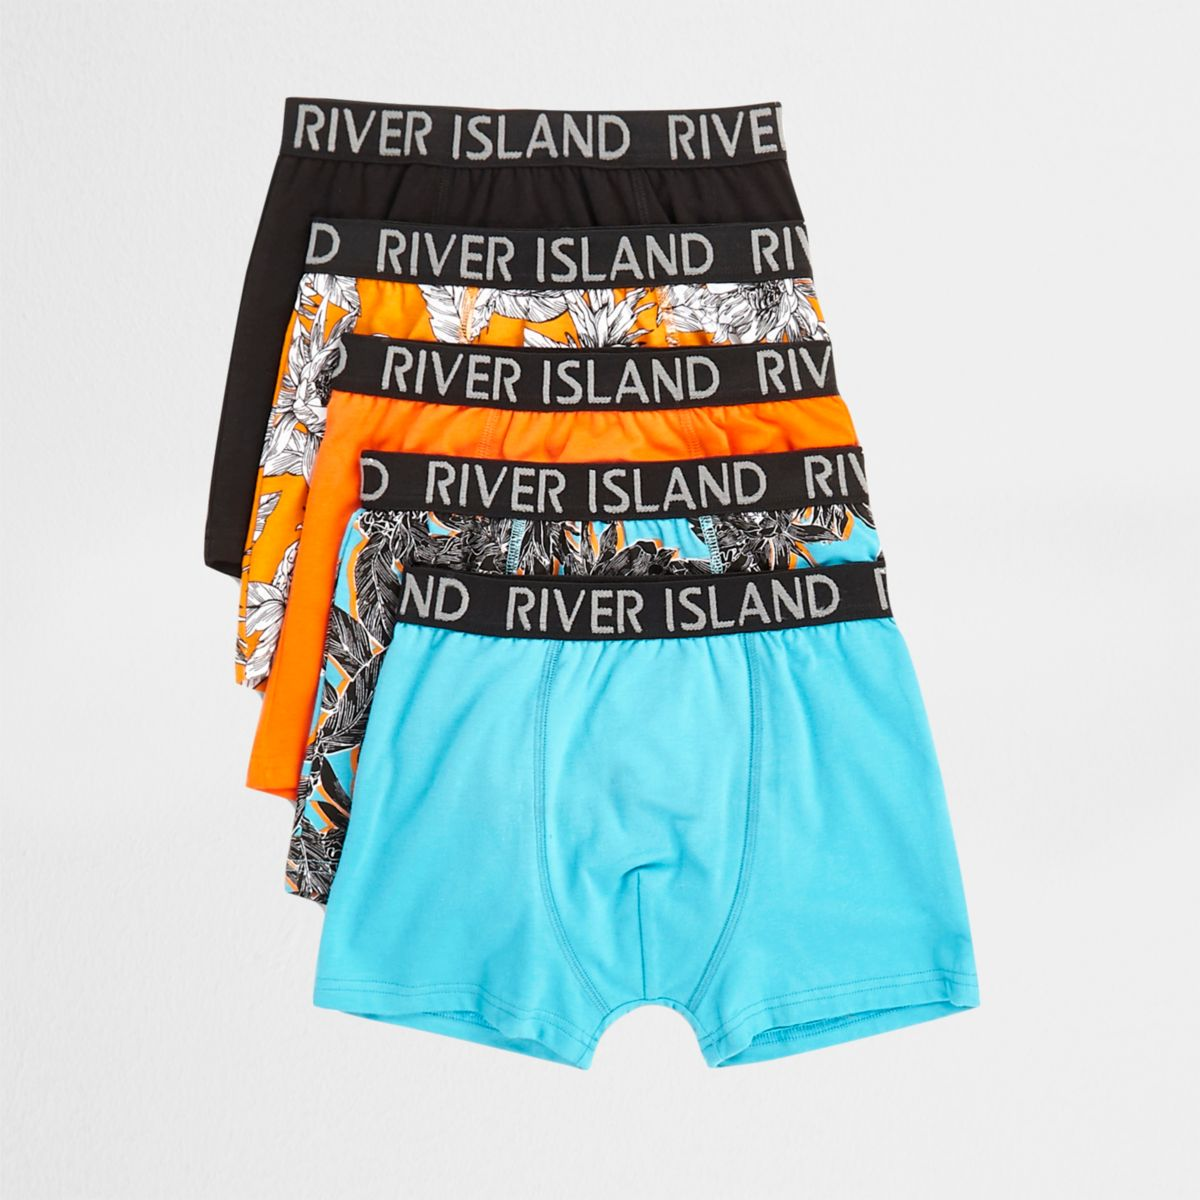 Mens Purple tropical boxers multipack River Island Visit New Discount Ebay Free Shipping Fashion Style MJMtdigiBS